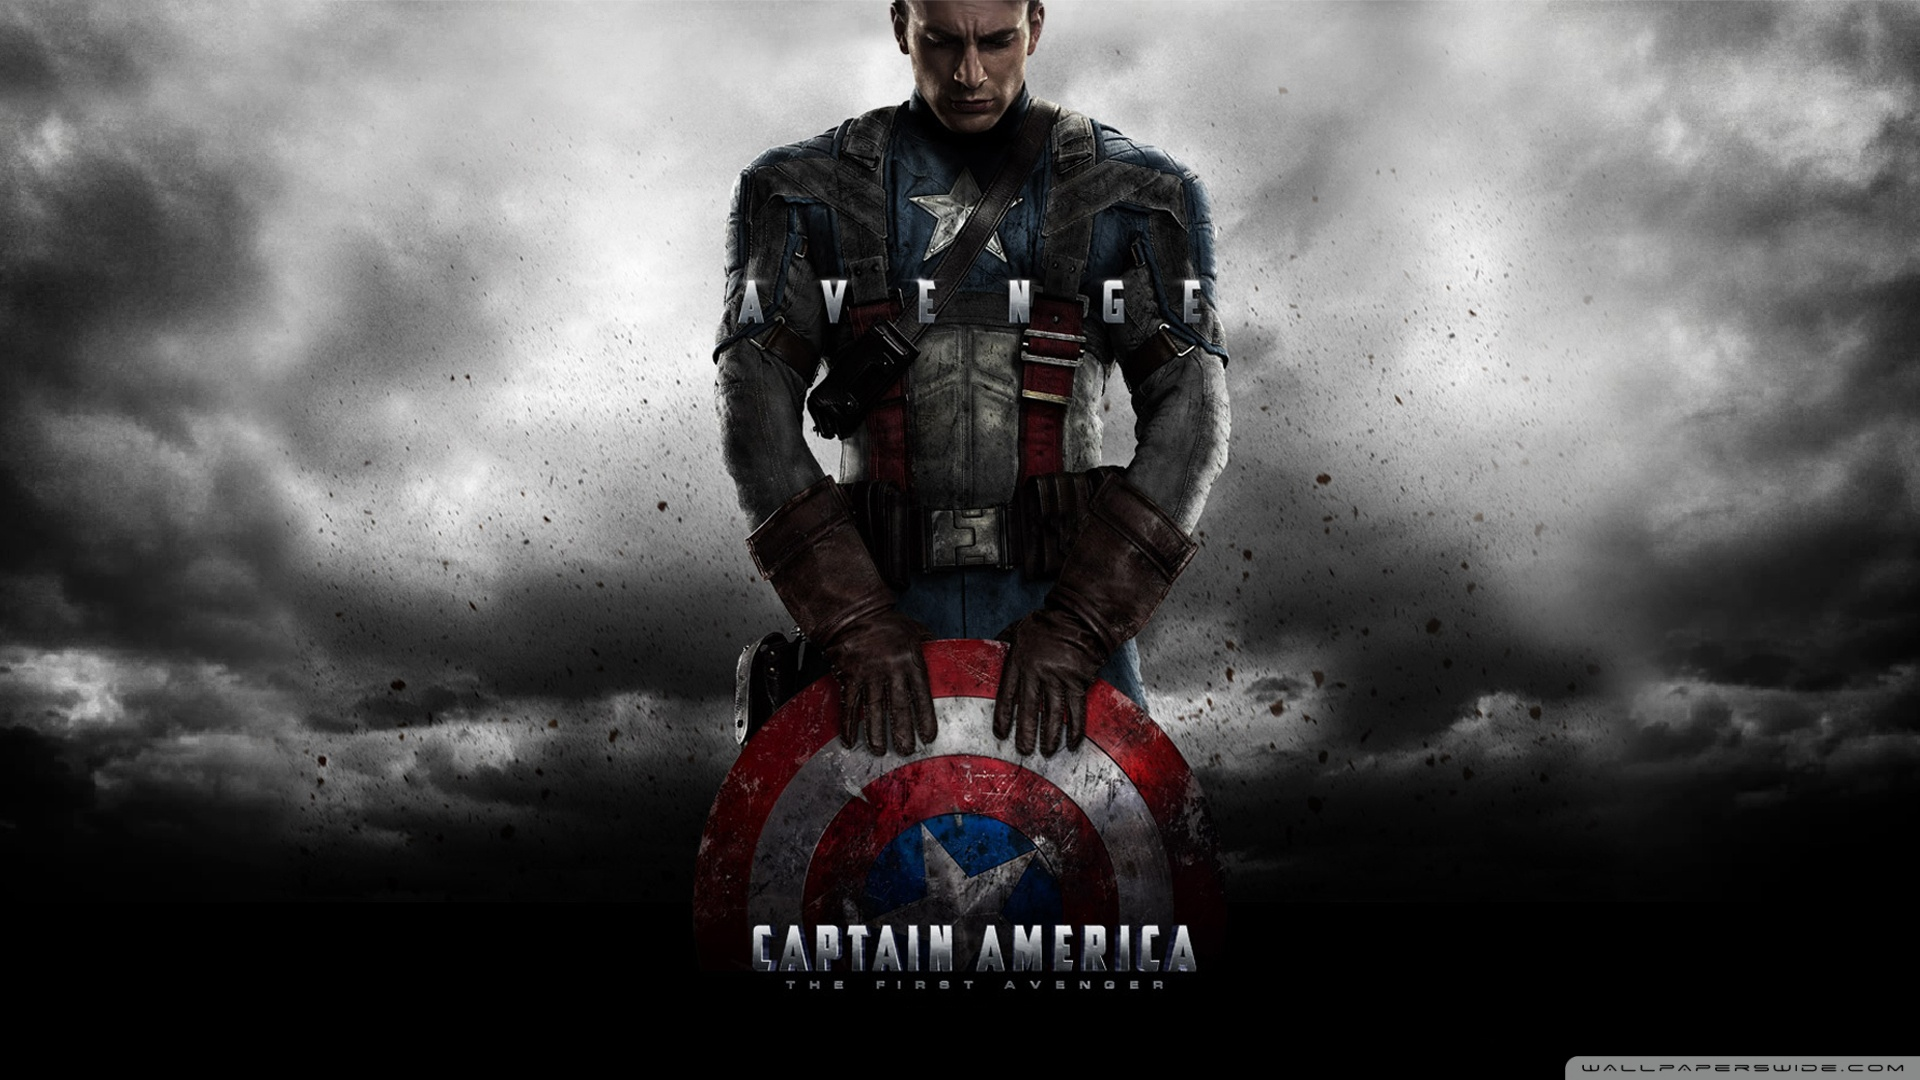 Awesome-Captain-America-The-Winter-Soldier-Pic-Captain-America-wallpaper-wpc5802401